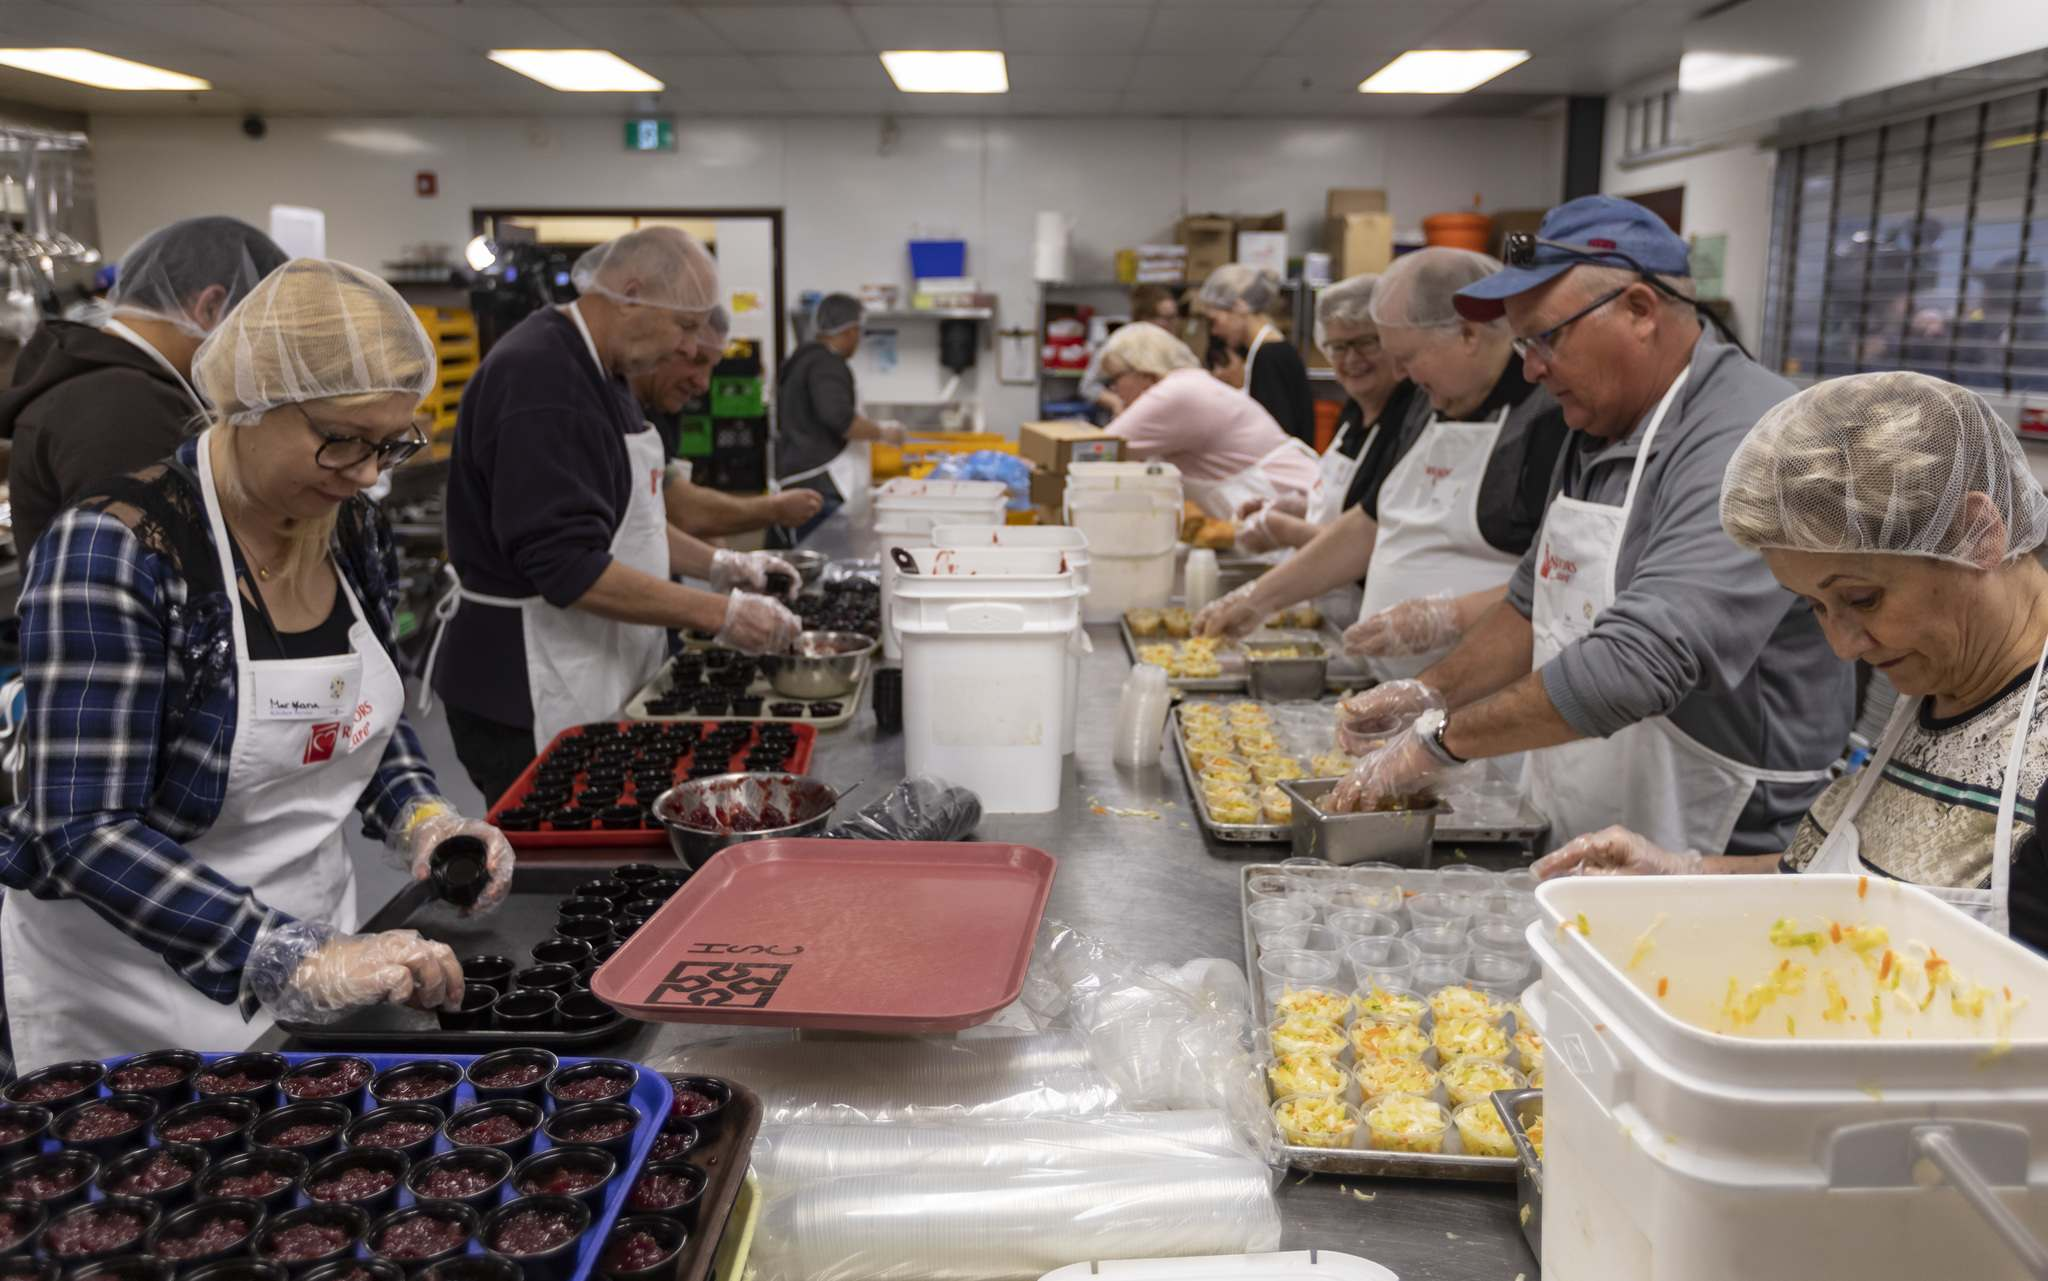 Volunteers at Siloam Mission's annual Easter lunch were preparred to serve 1,000 people.